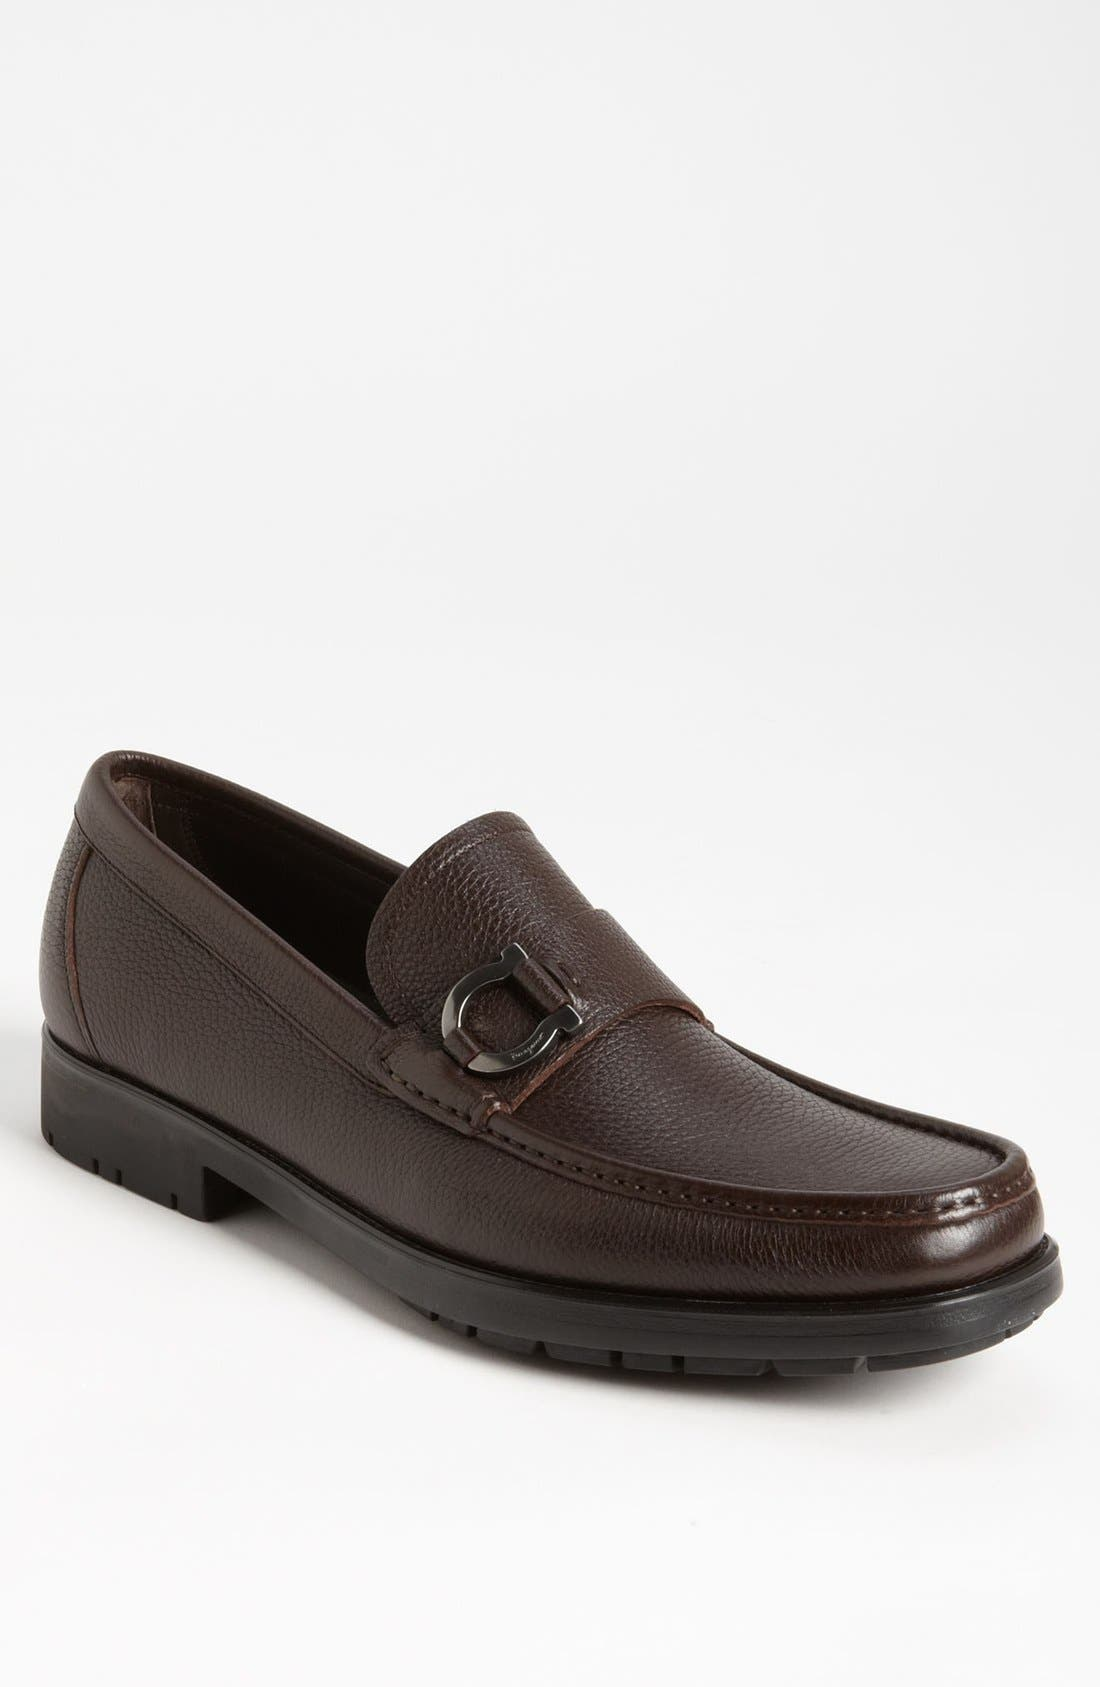 Main Image - Salvatore Ferragamo 'Biliardo' Loafer